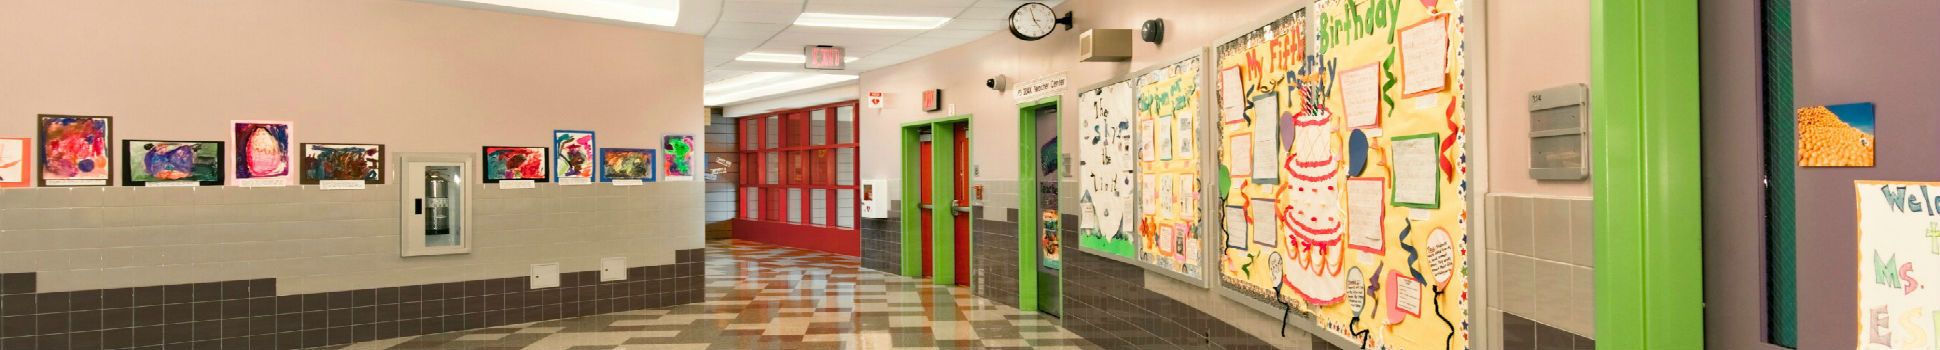 Morris Heights Educational Campus Corridor - Bronx